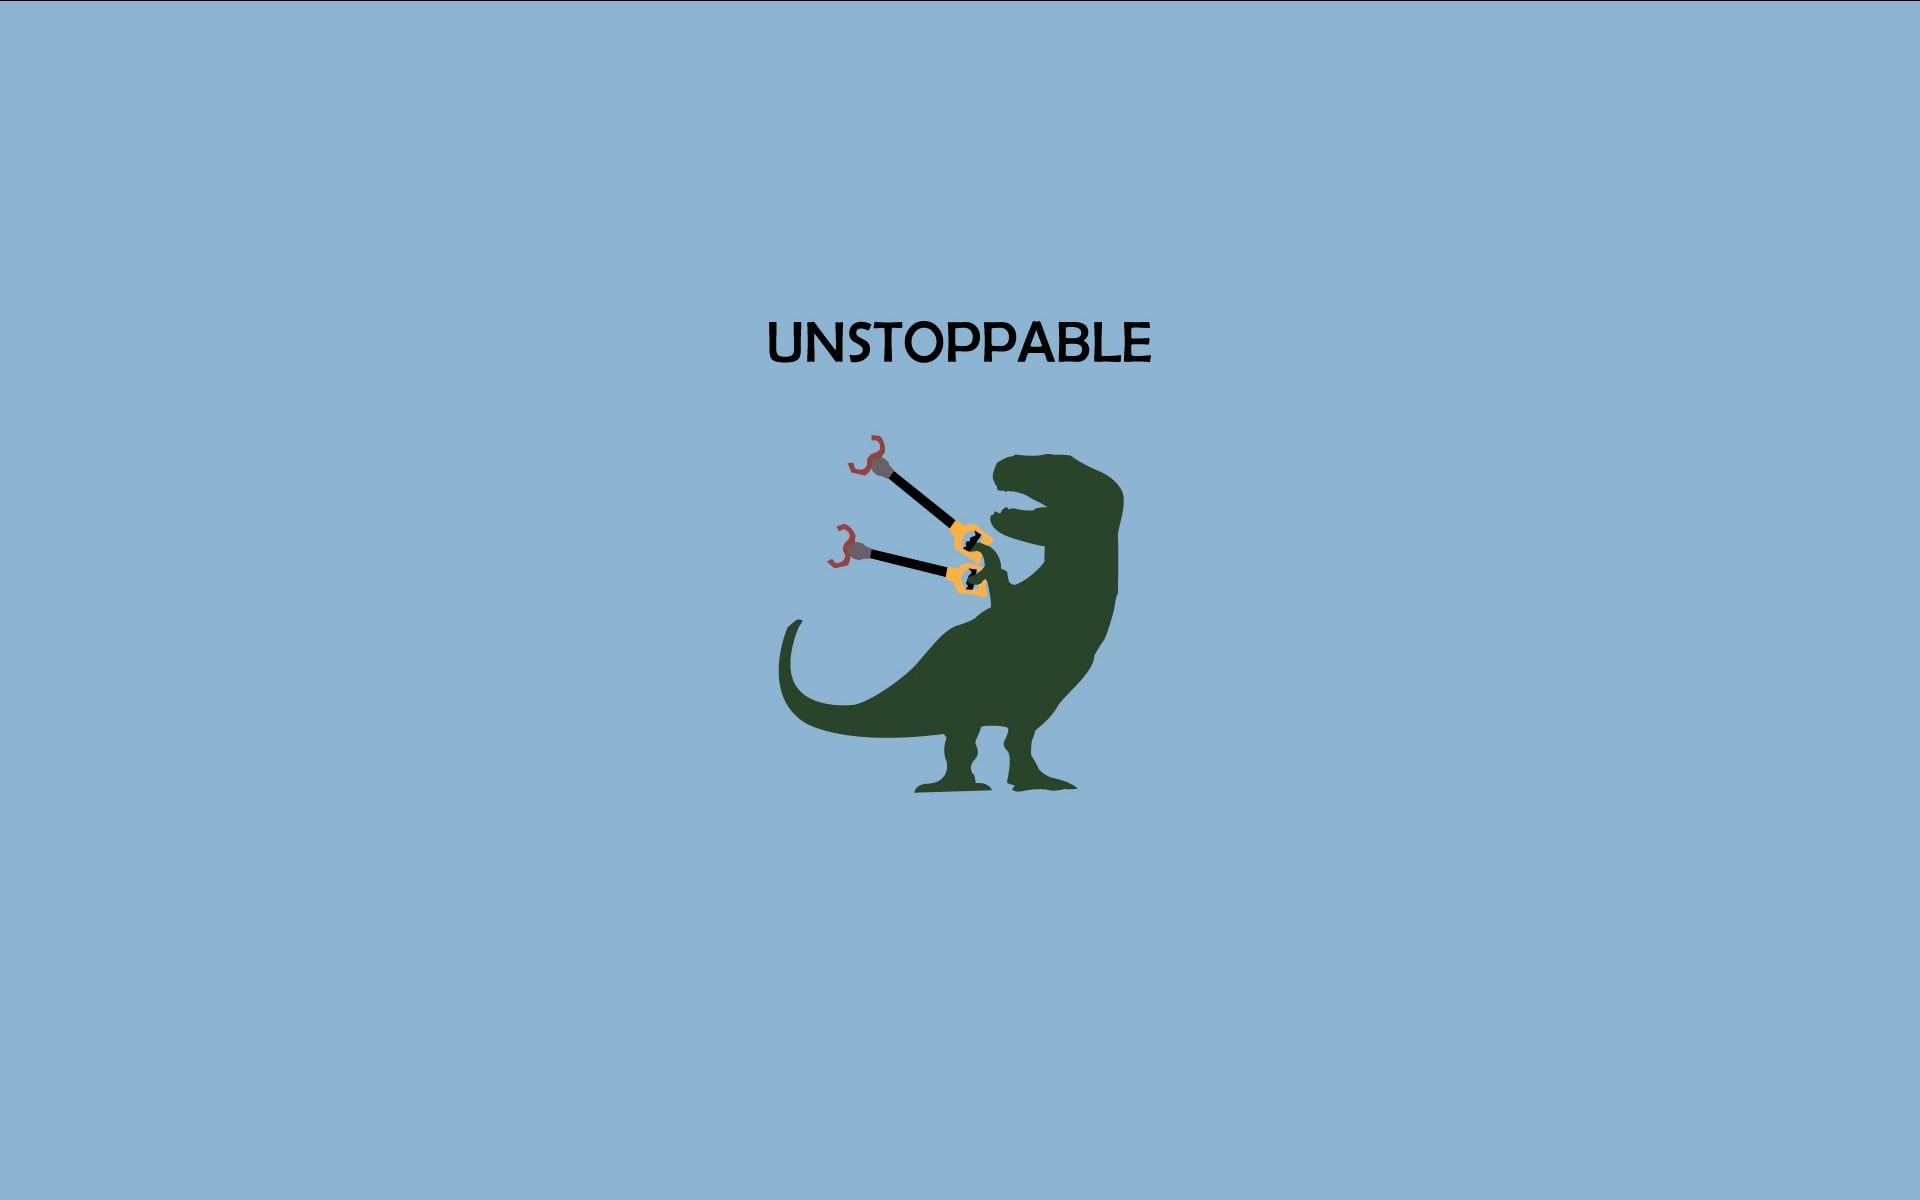 Green T rex illustration with unstoppable text overlay 1920x1200